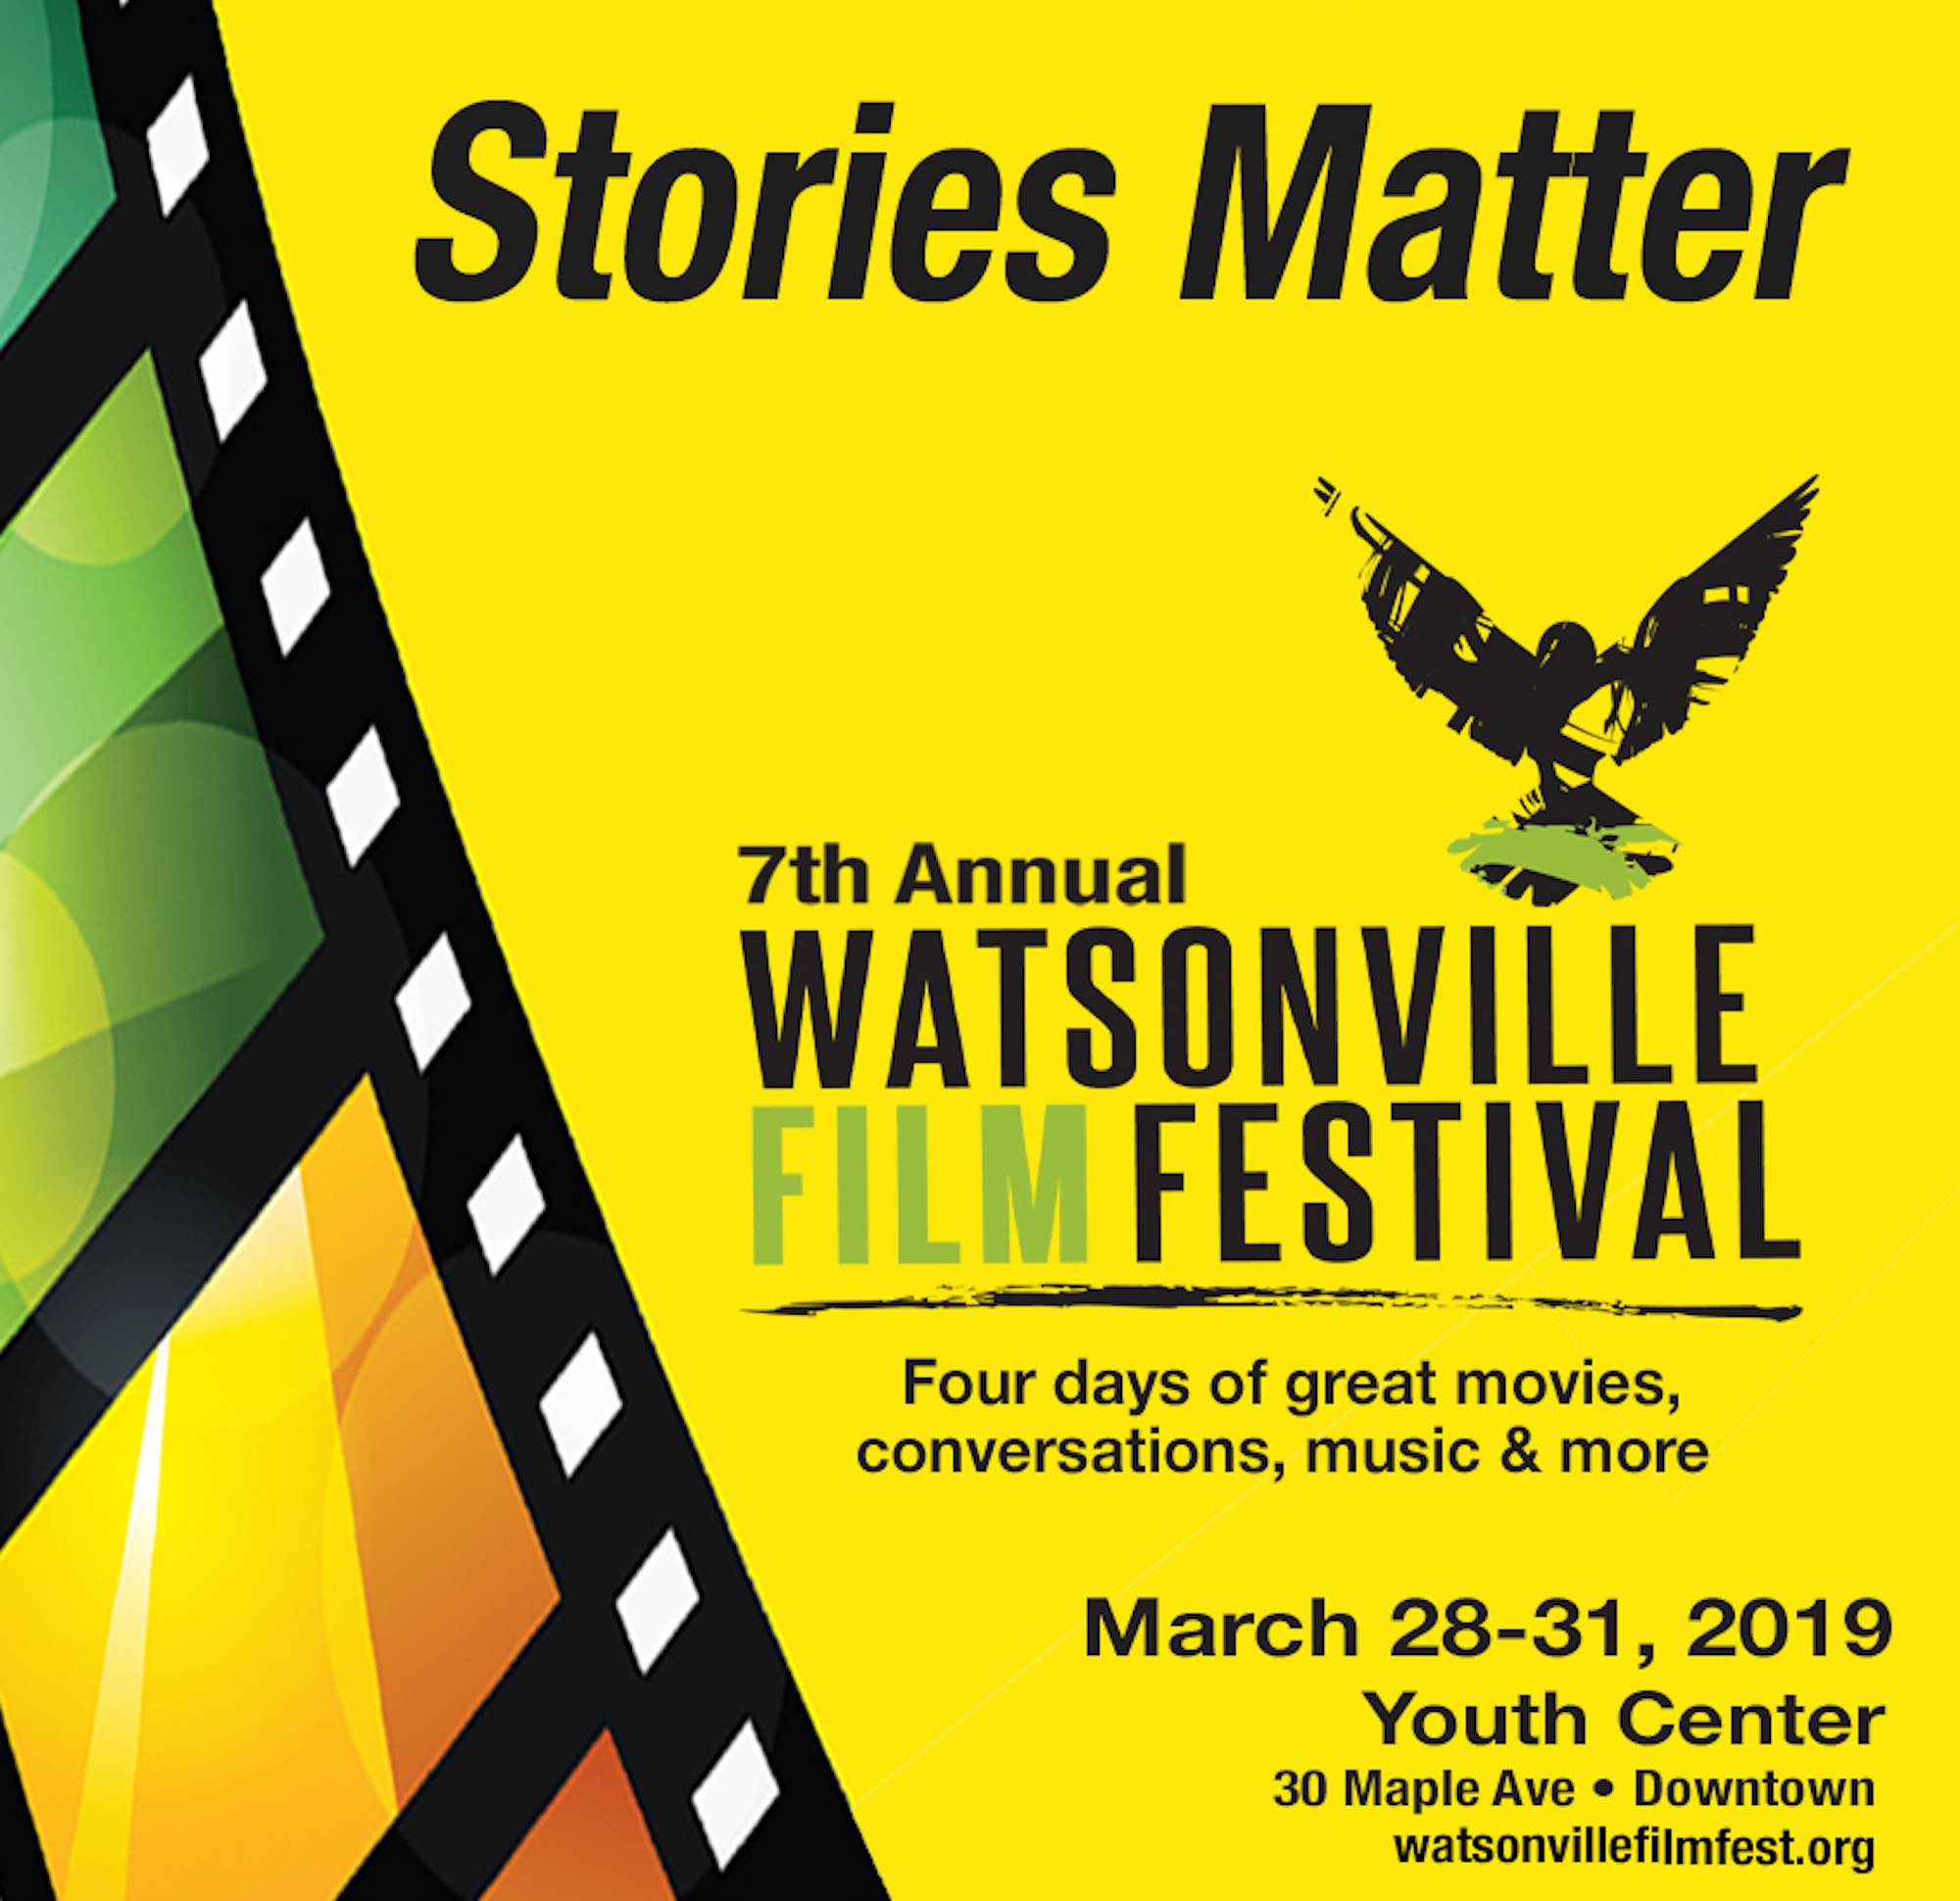 WFF - March 28-31, 2019